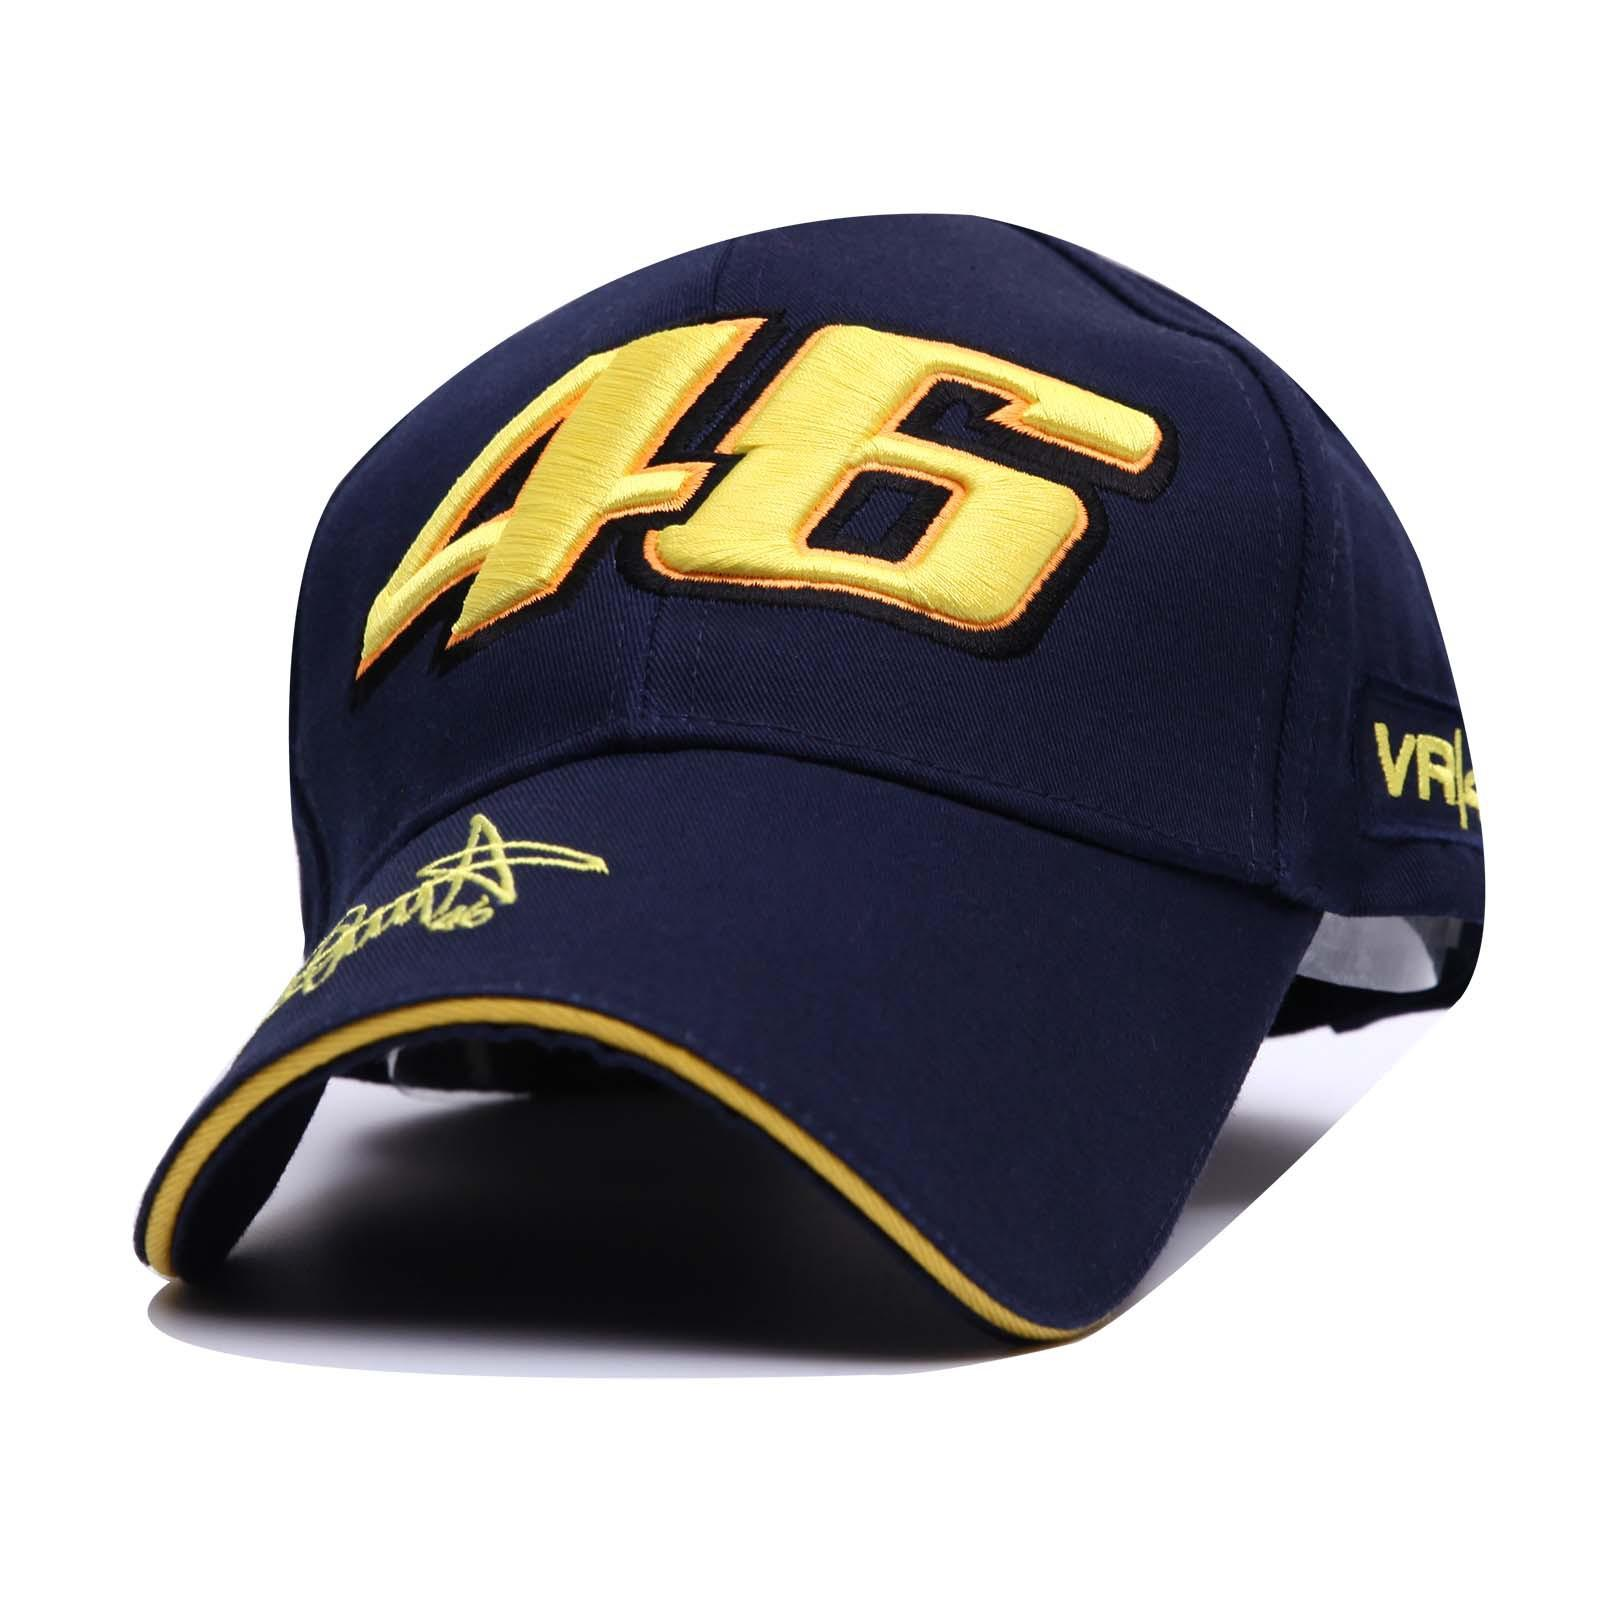 2019 Valentino Rossi VR46 Moto GP Baseball Cap Hat 3D Embroidered  Motorcycle Hat Racing Cap Sports Baseball Cap From Chenyifaer 00e1476c2bd9